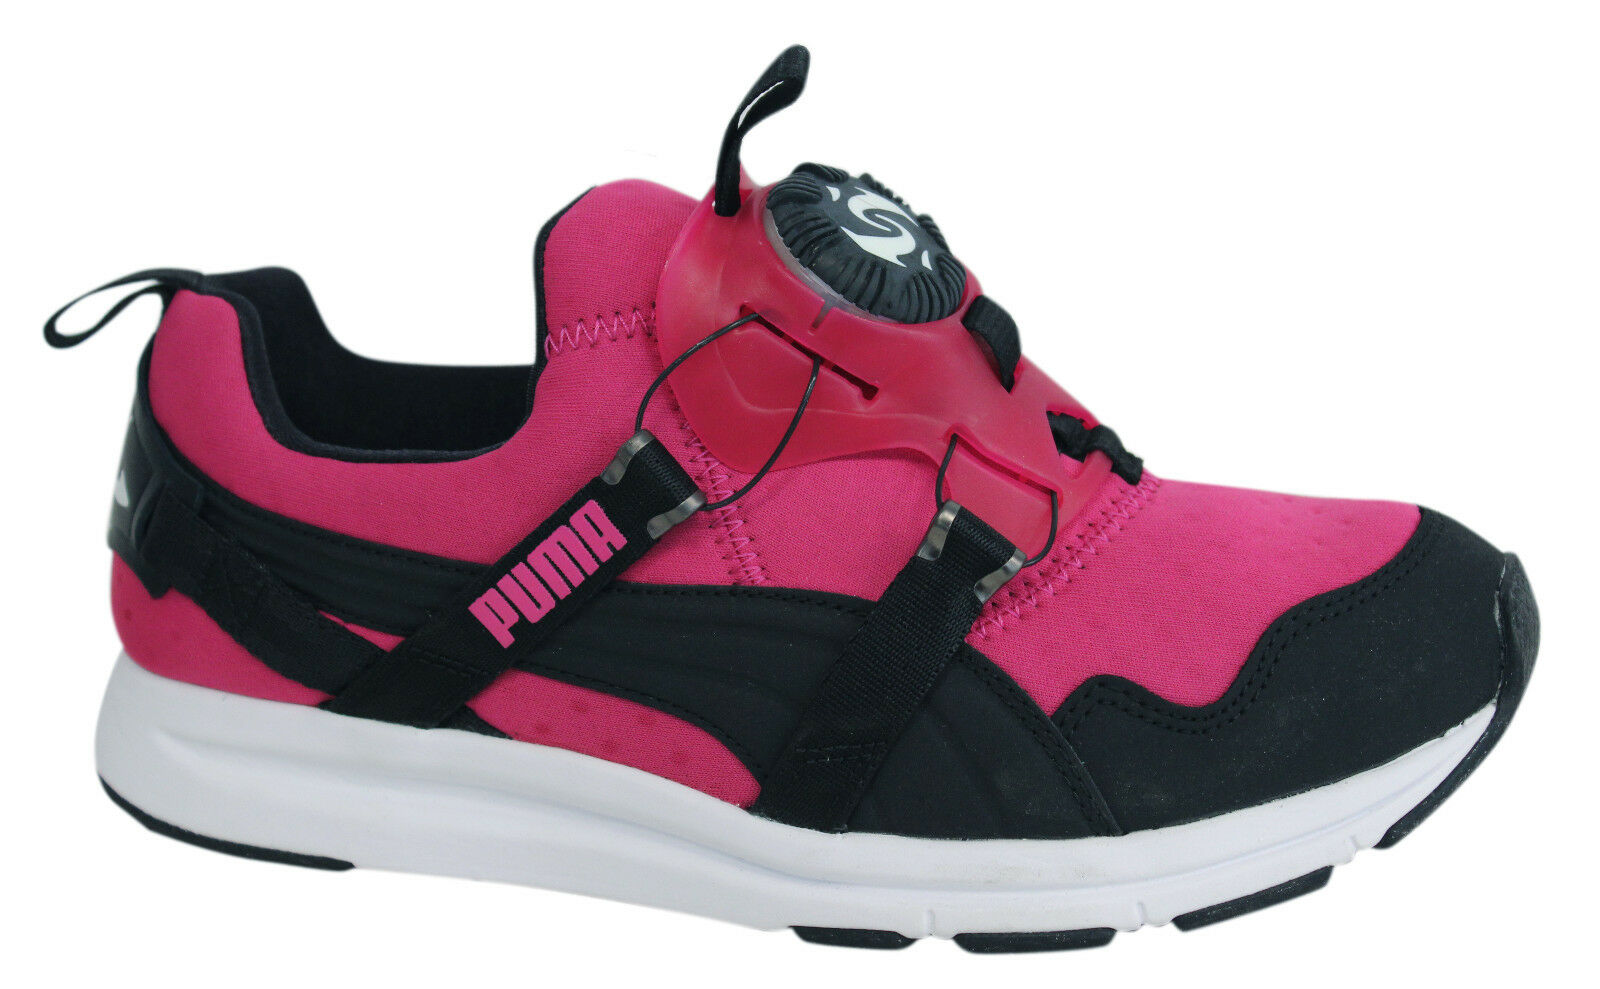 Puma Trinomic Disc Chrome Womens Trainers Slip On Pink Shoes 356489 02 U85